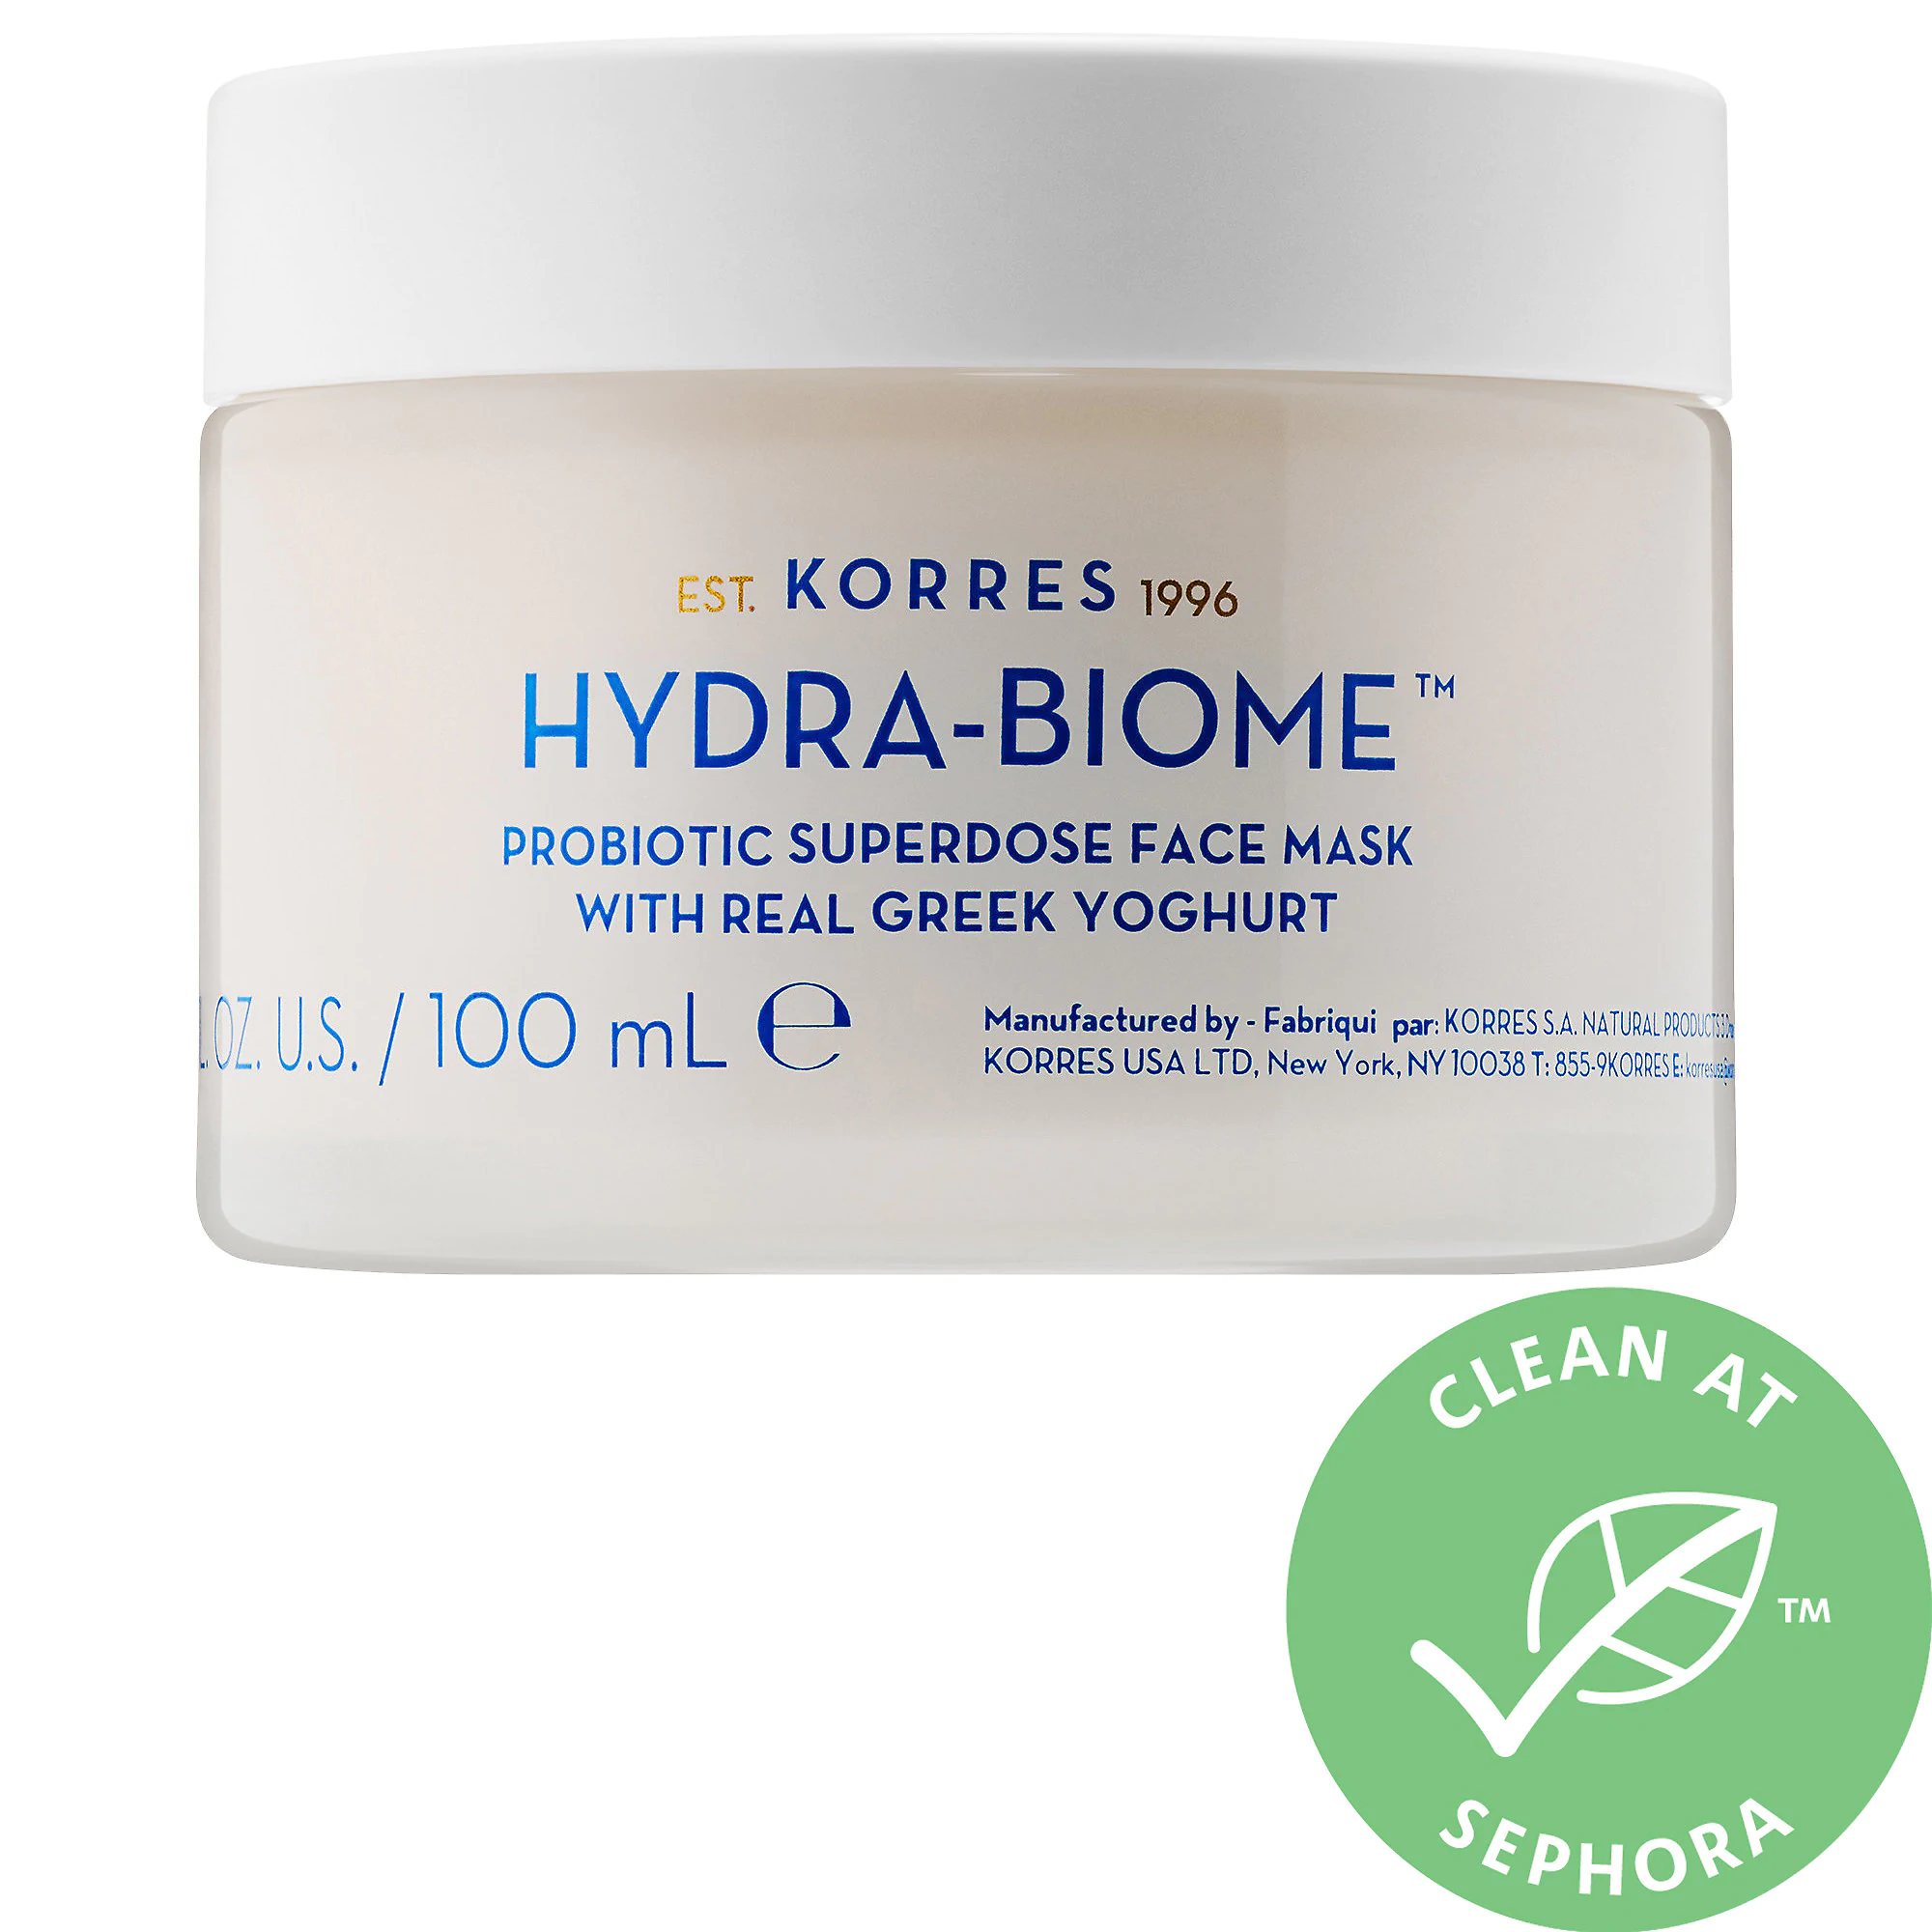 KORRES-Hydra Biome Probiotic Superdose Face Mask With Real Greek Yoghurt